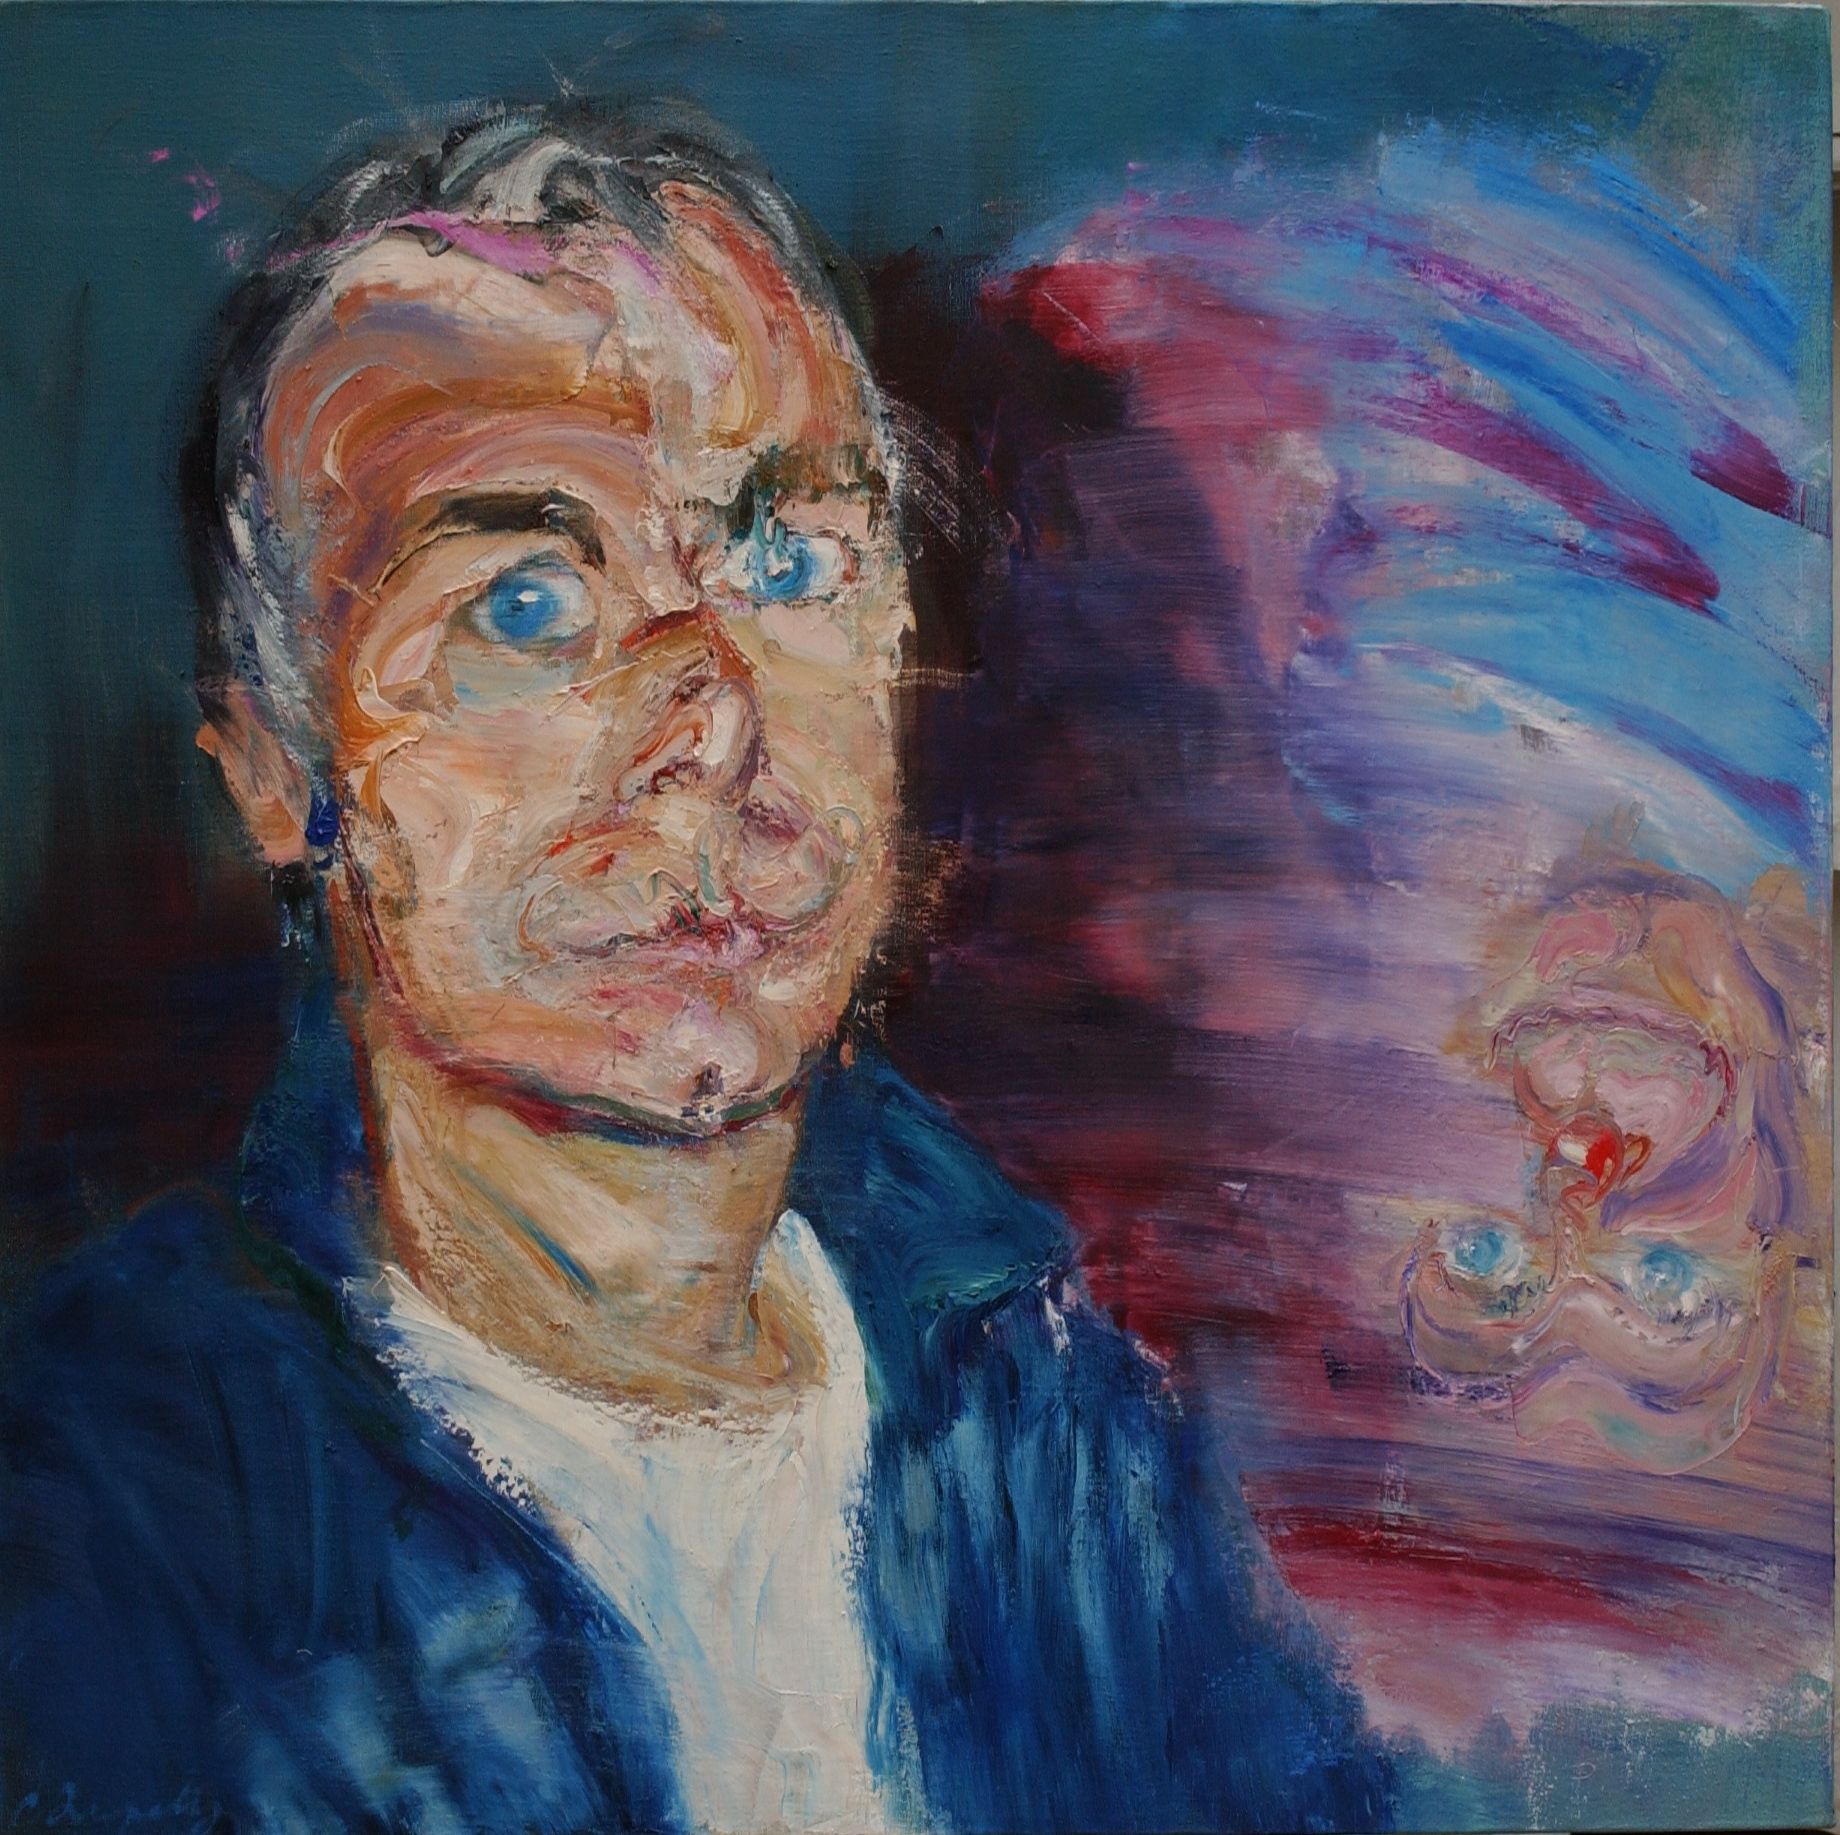 DUBOSC,Christophe Dupety,Contemporary painting